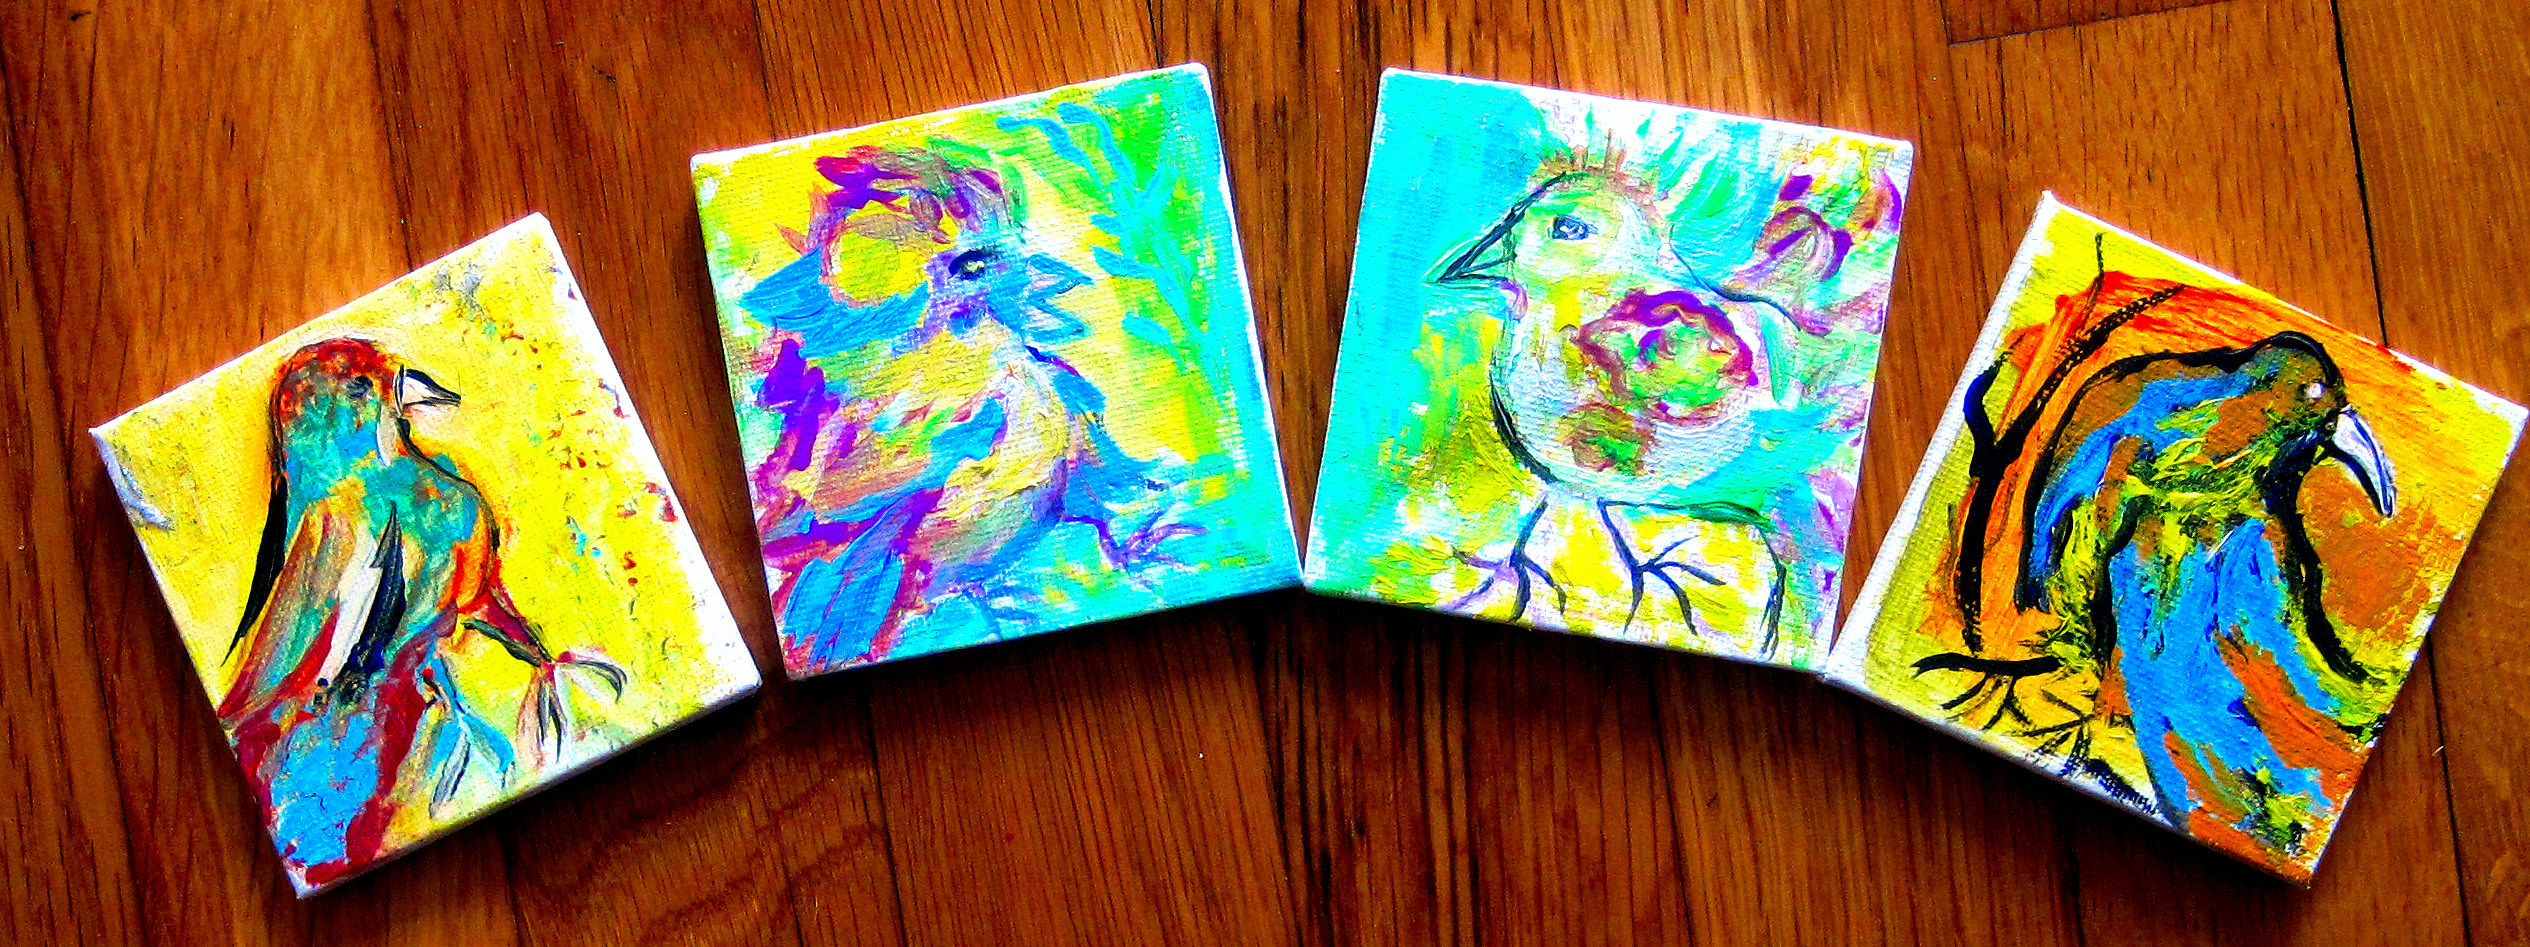 Colorful Mini Paintings